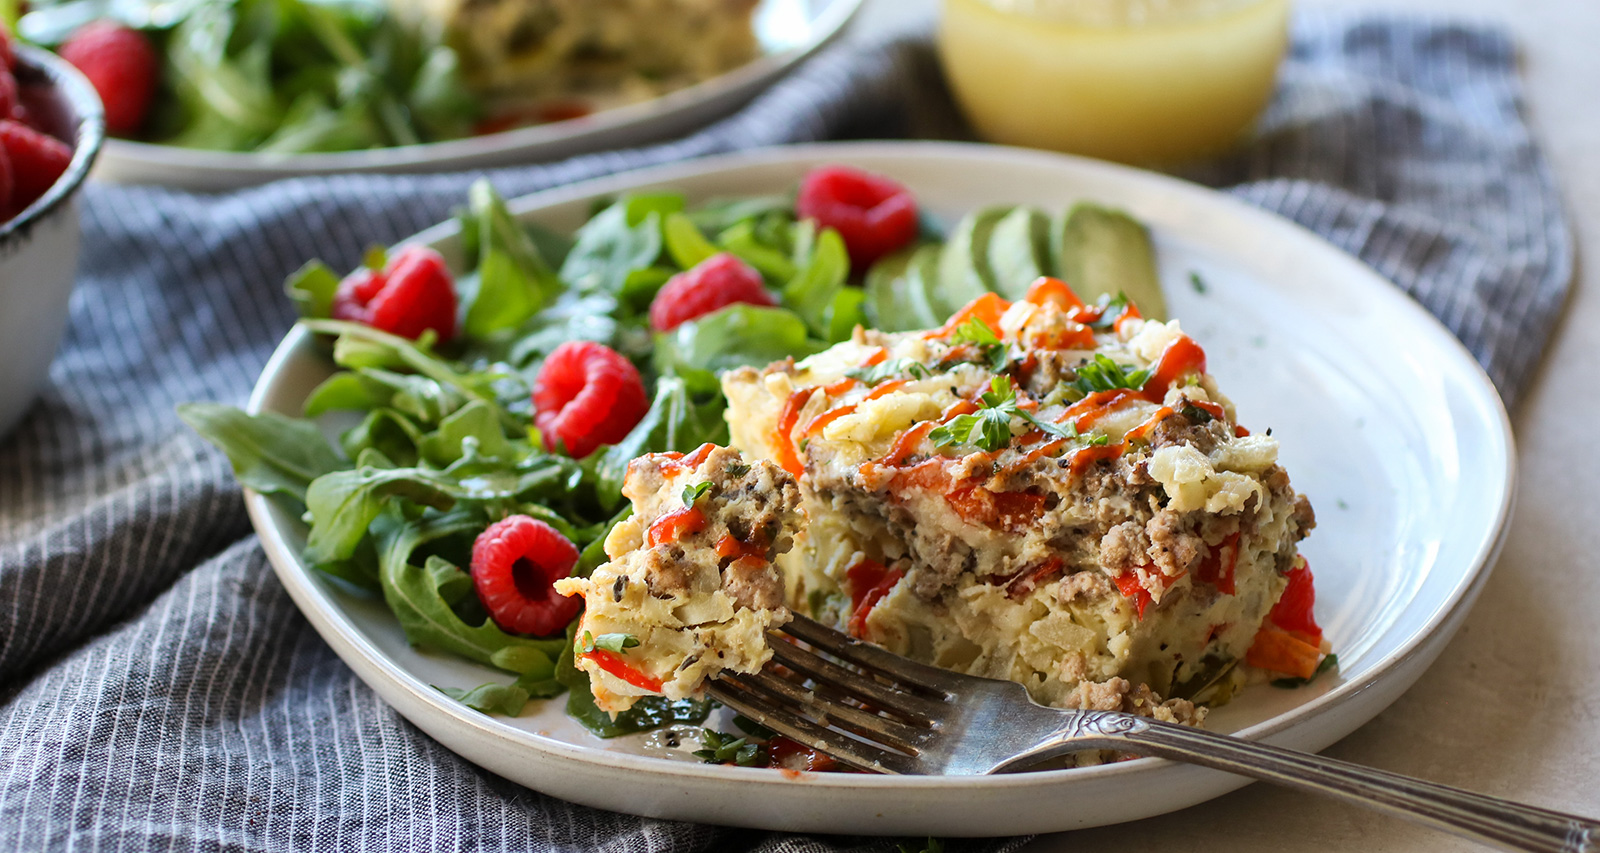 This Slow Cooker Turkey Sausage and Hashbrown Egg Bake can be easily modified into a strata by layering the ingredients. Photo by the Real Food Dietitians.